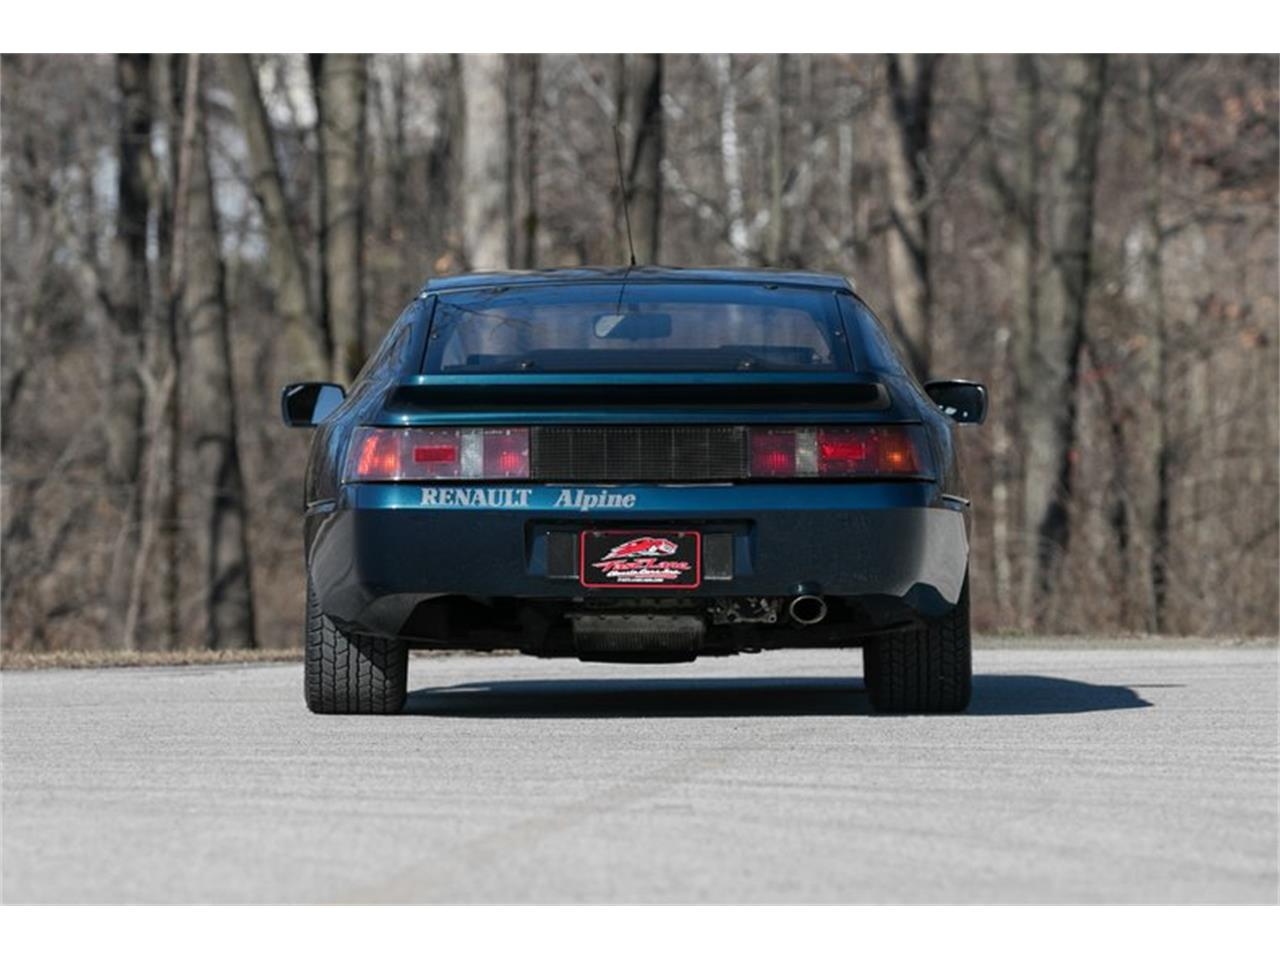 Large Picture of 1990 Renault Alpine - $27,500.00 Offered by Fast Lane Classic Cars Inc. - N1T4